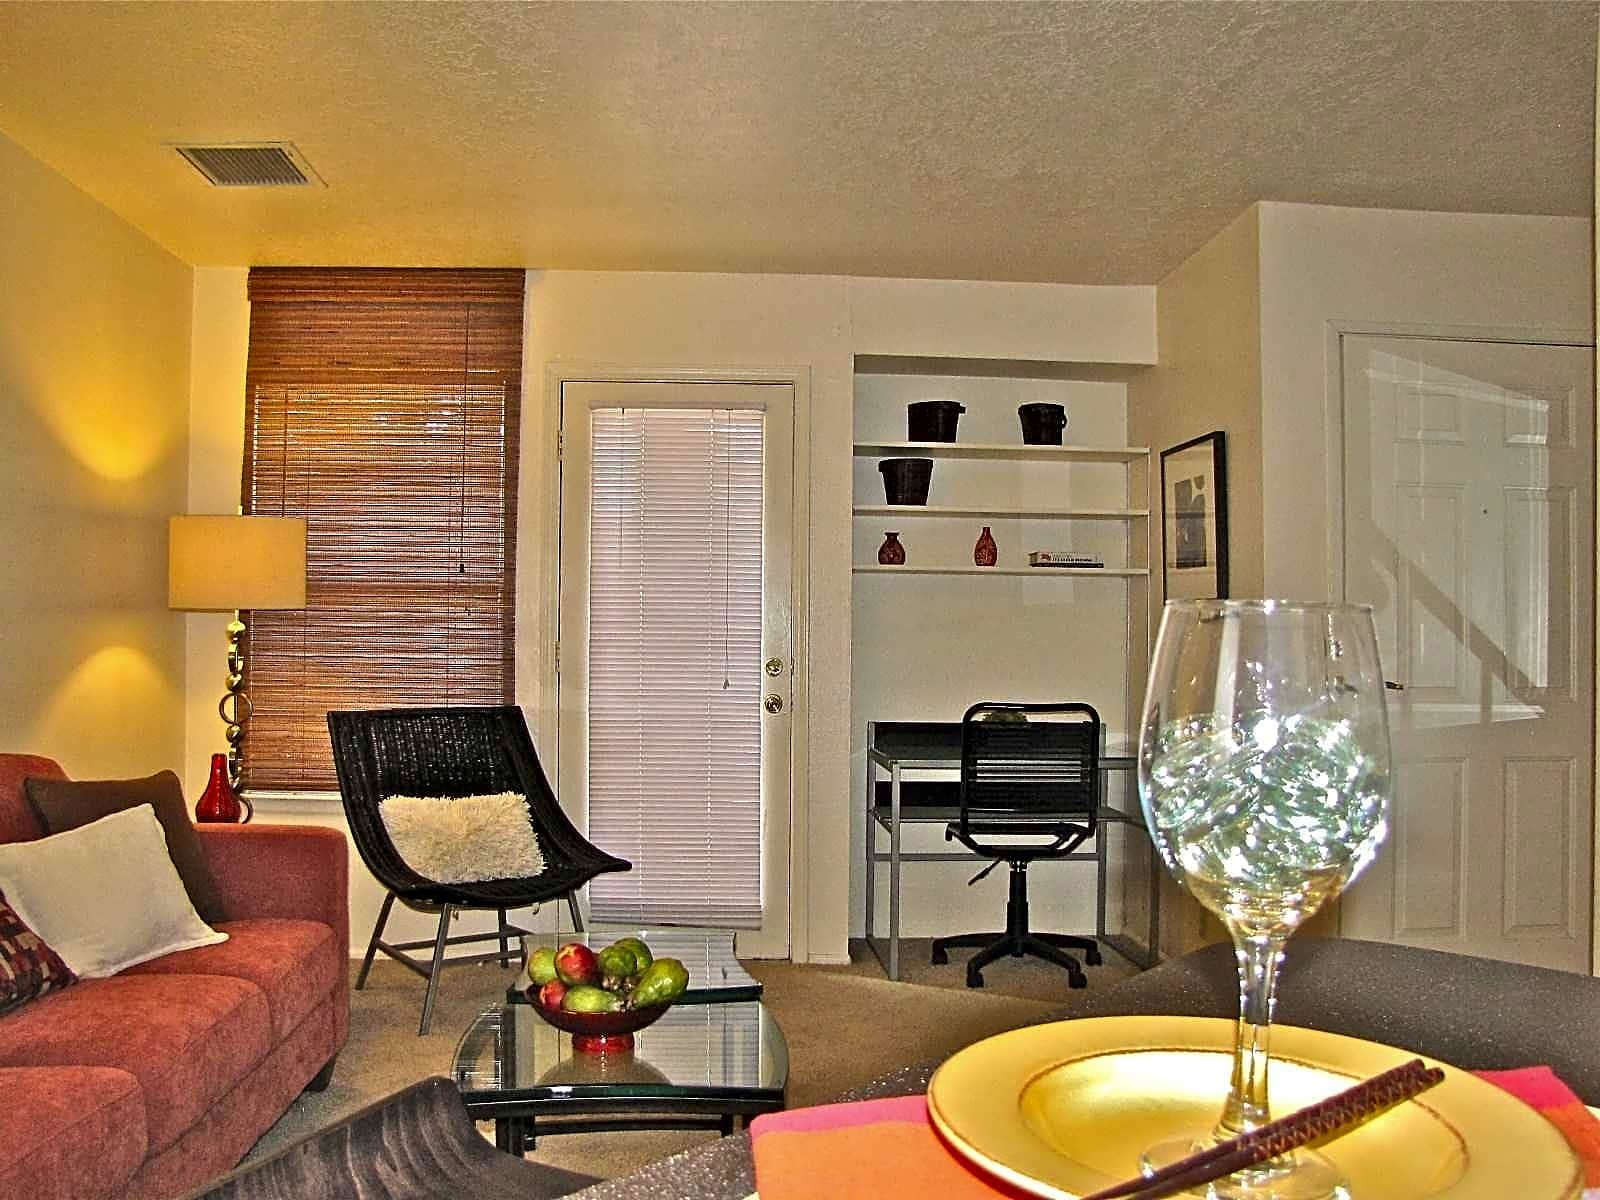 Pet Friendly Apartments In Albuquerque Nm Pet Friendly Houses For Rent Page 2